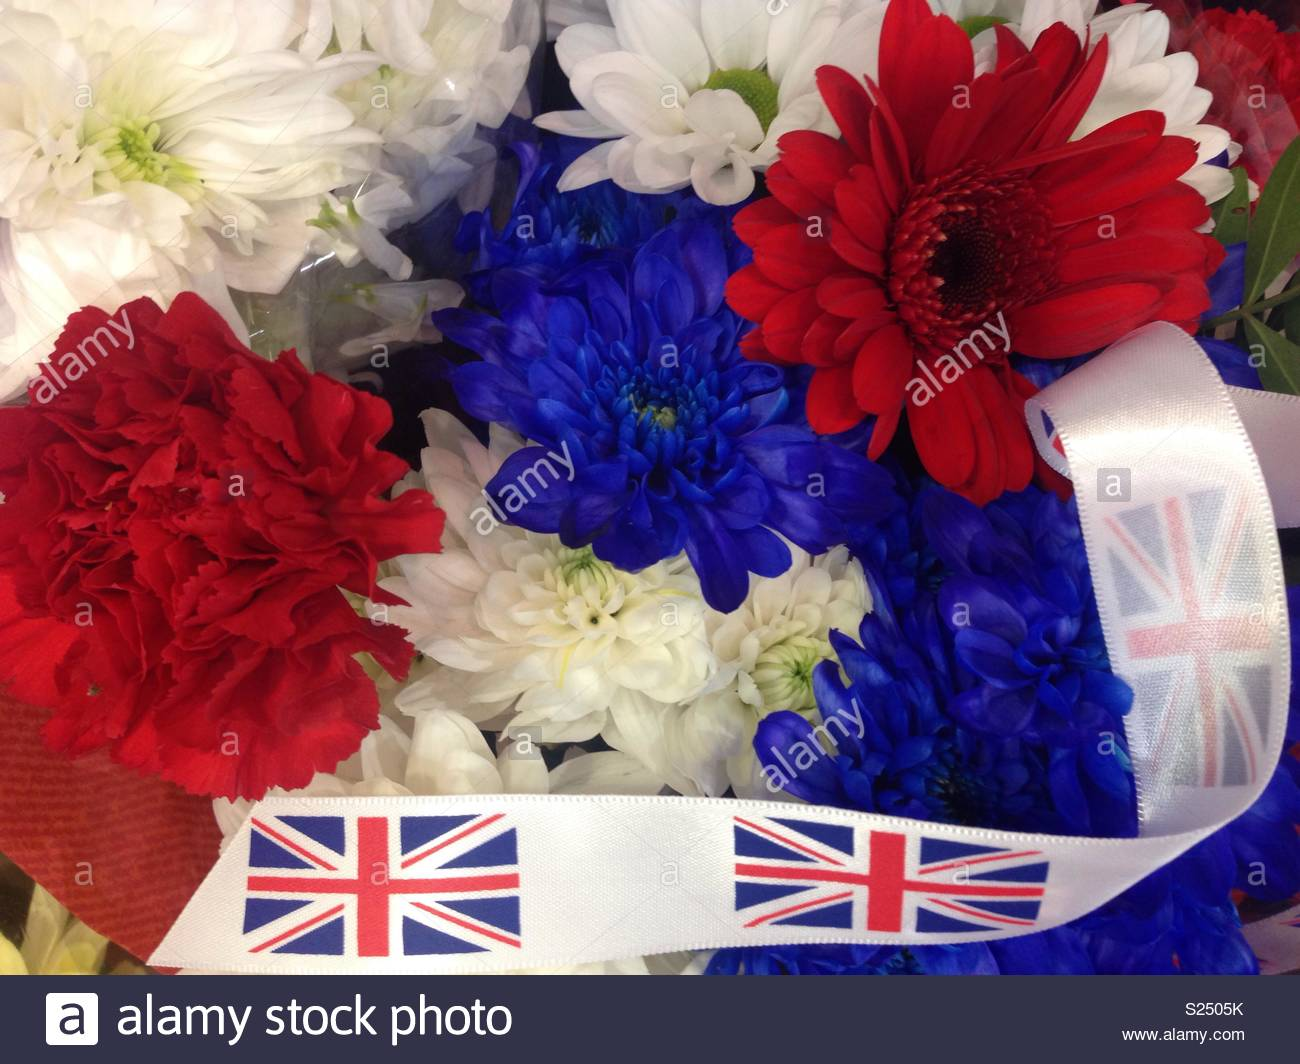 Red white blue flowers flag stock photos red white blue flowers red white and blue flowers with the united kingdom national flag union jack izmirmasajfo